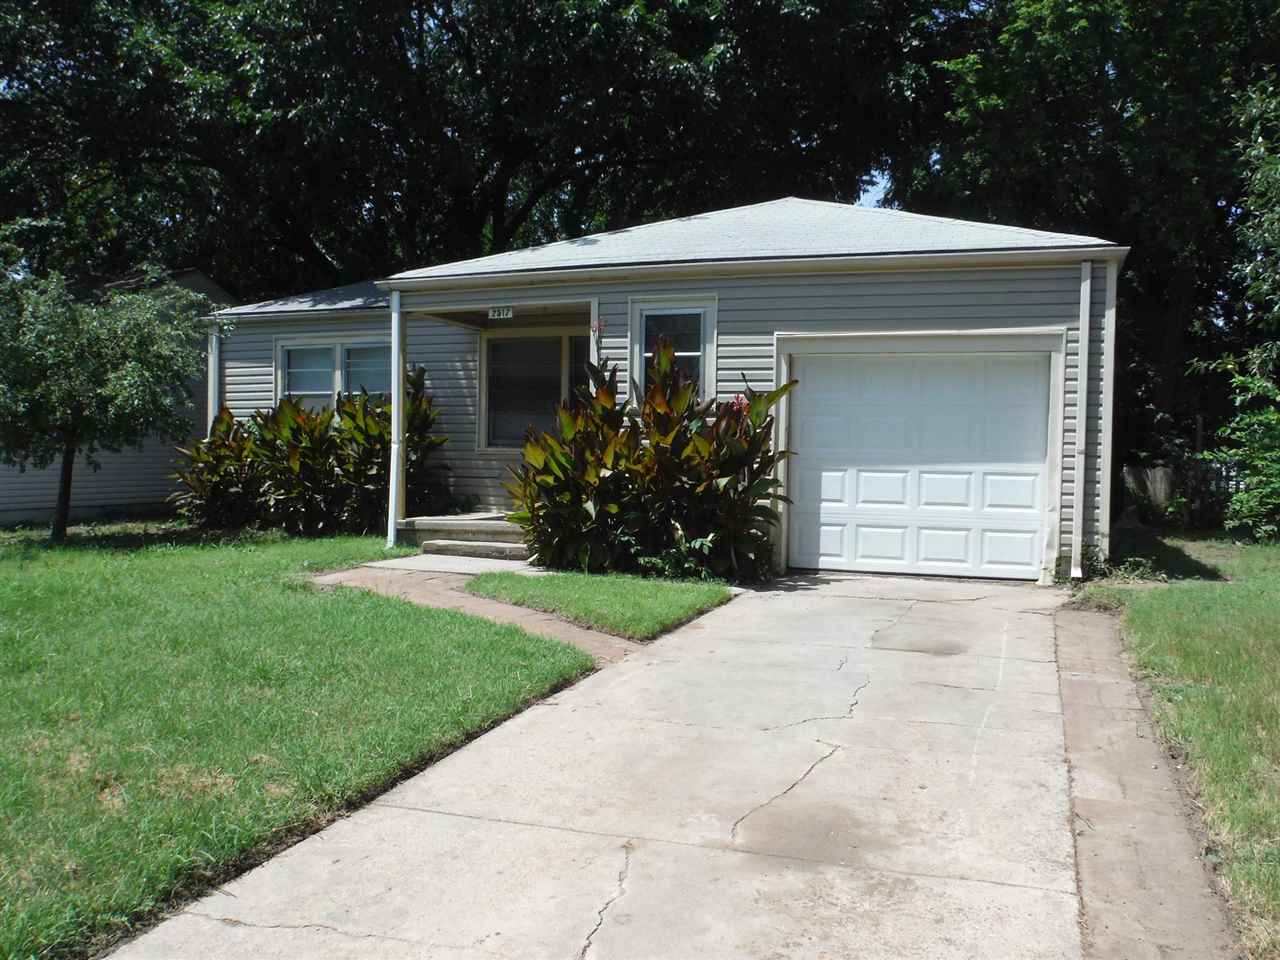 3 bedroom 2 bathroom home with a 1-car garage. New carpet and freshly painted interior. Breakfast ba